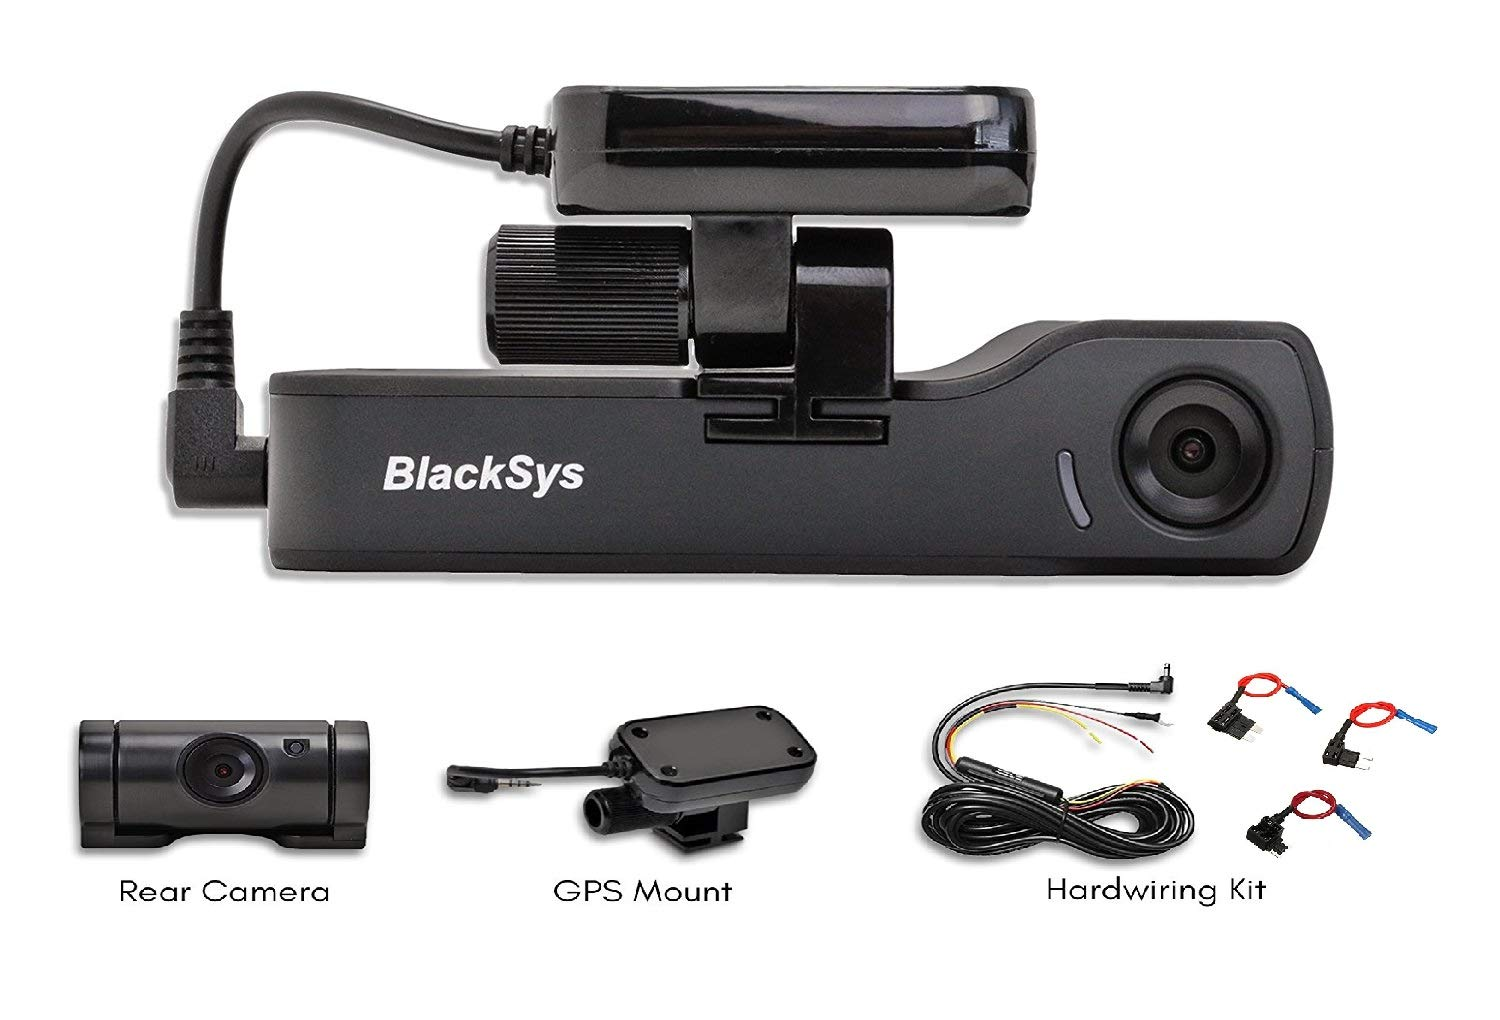 Hardwiring Kit for Parking Mode BlackSys CH-200 2 Channel Dash cam with 1920 x 1080p Full HD Night Vision GPS Mount 16GB SD Card